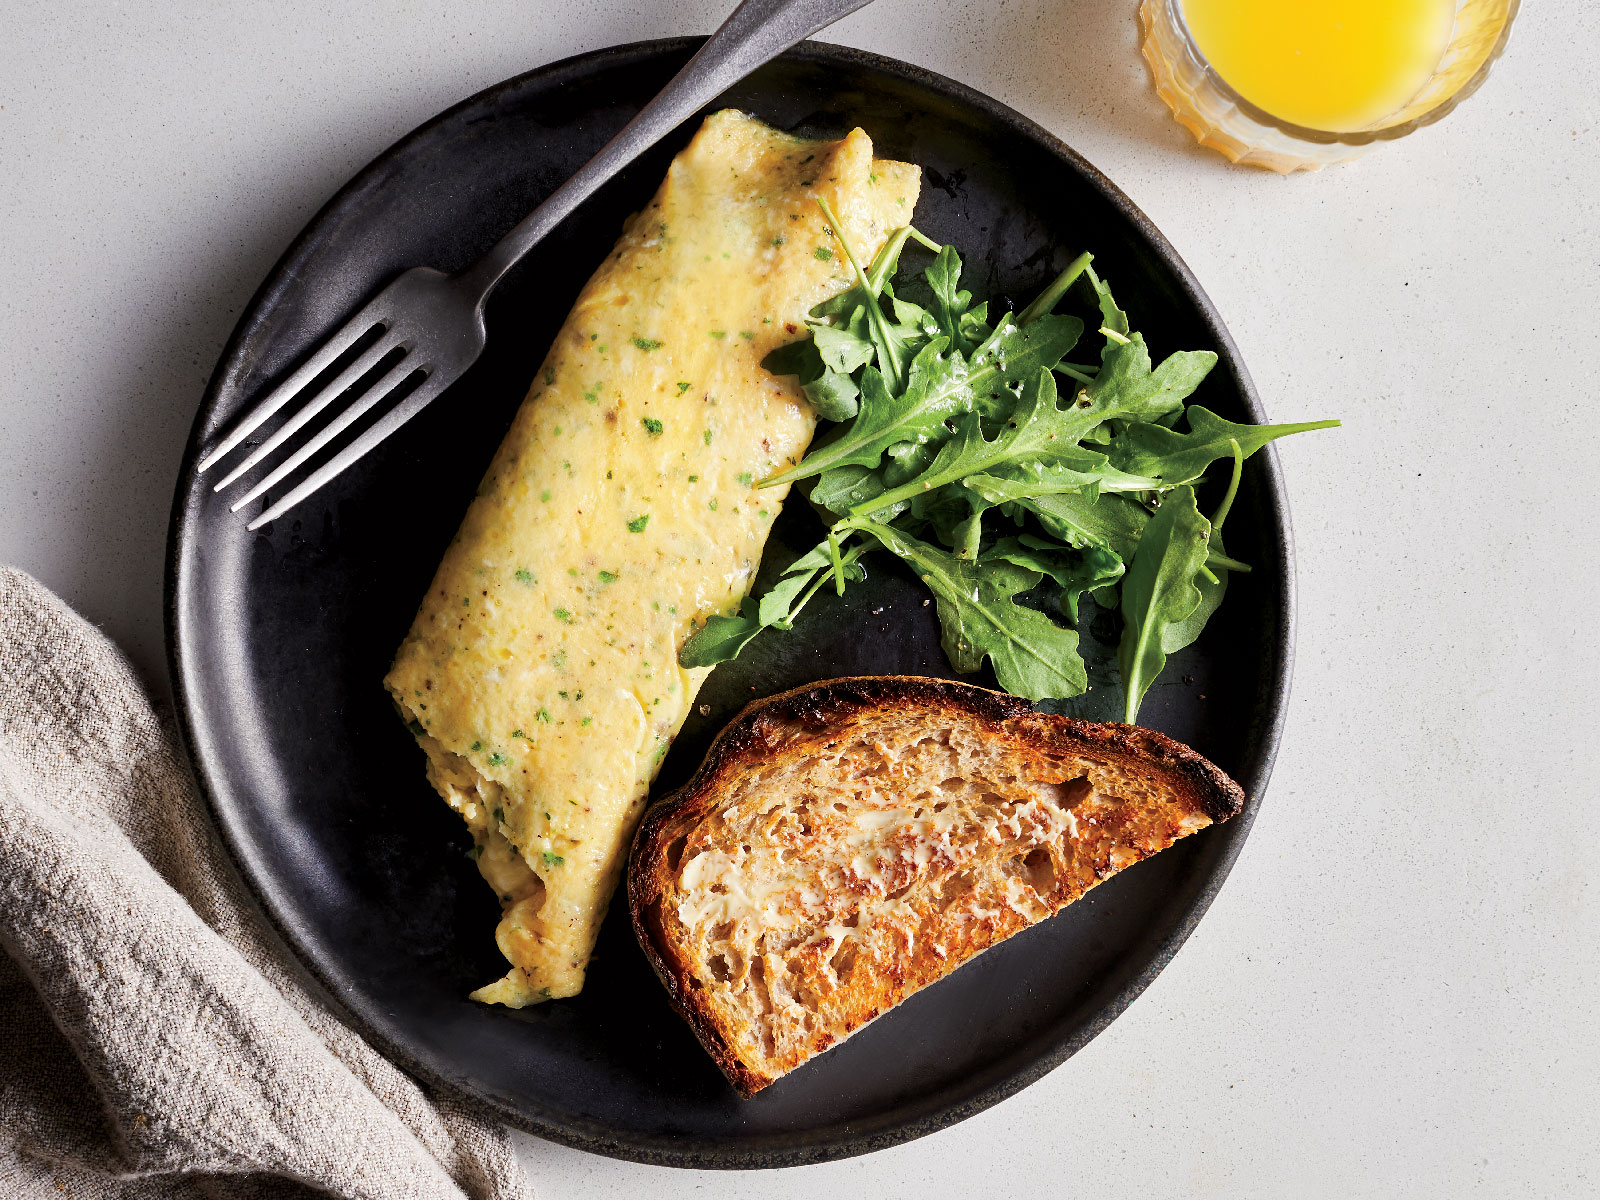 How to Make a French Rolled Omelet